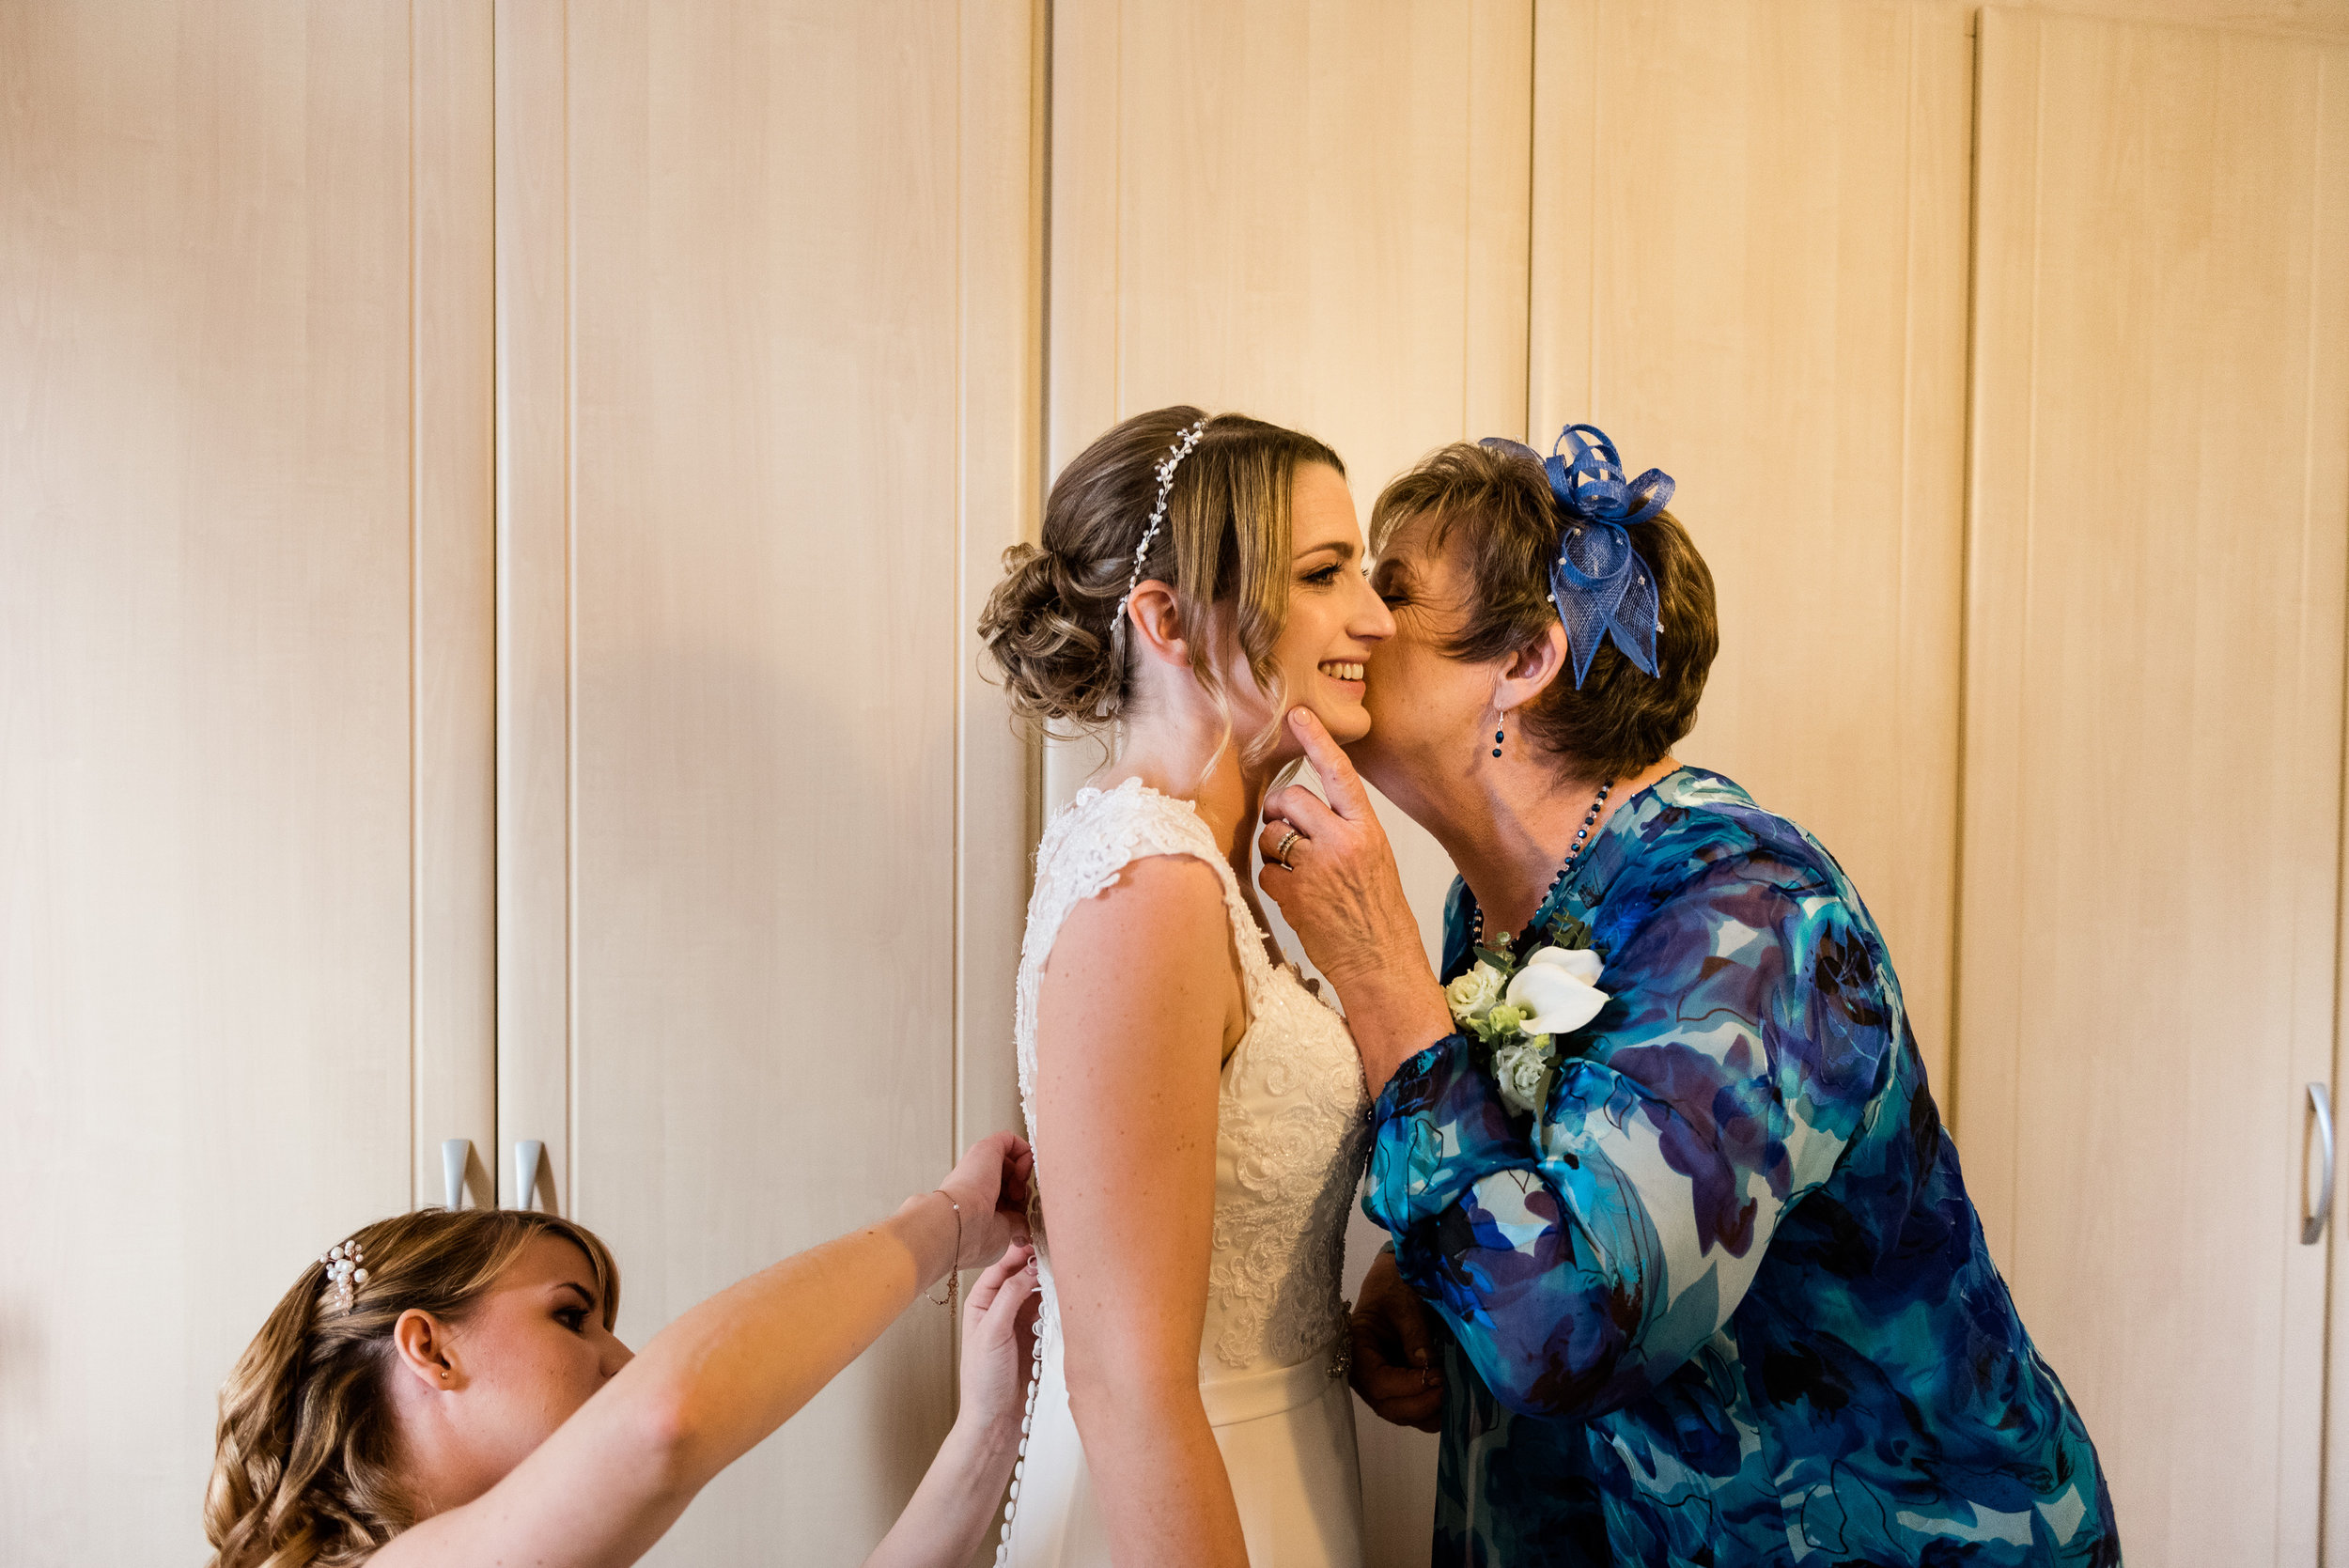 Birmingham Documentary Wedding Photography at New Hall, Sutton Coldfield Turkish Red Candid Reportage - Jenny Harper-11.jpg